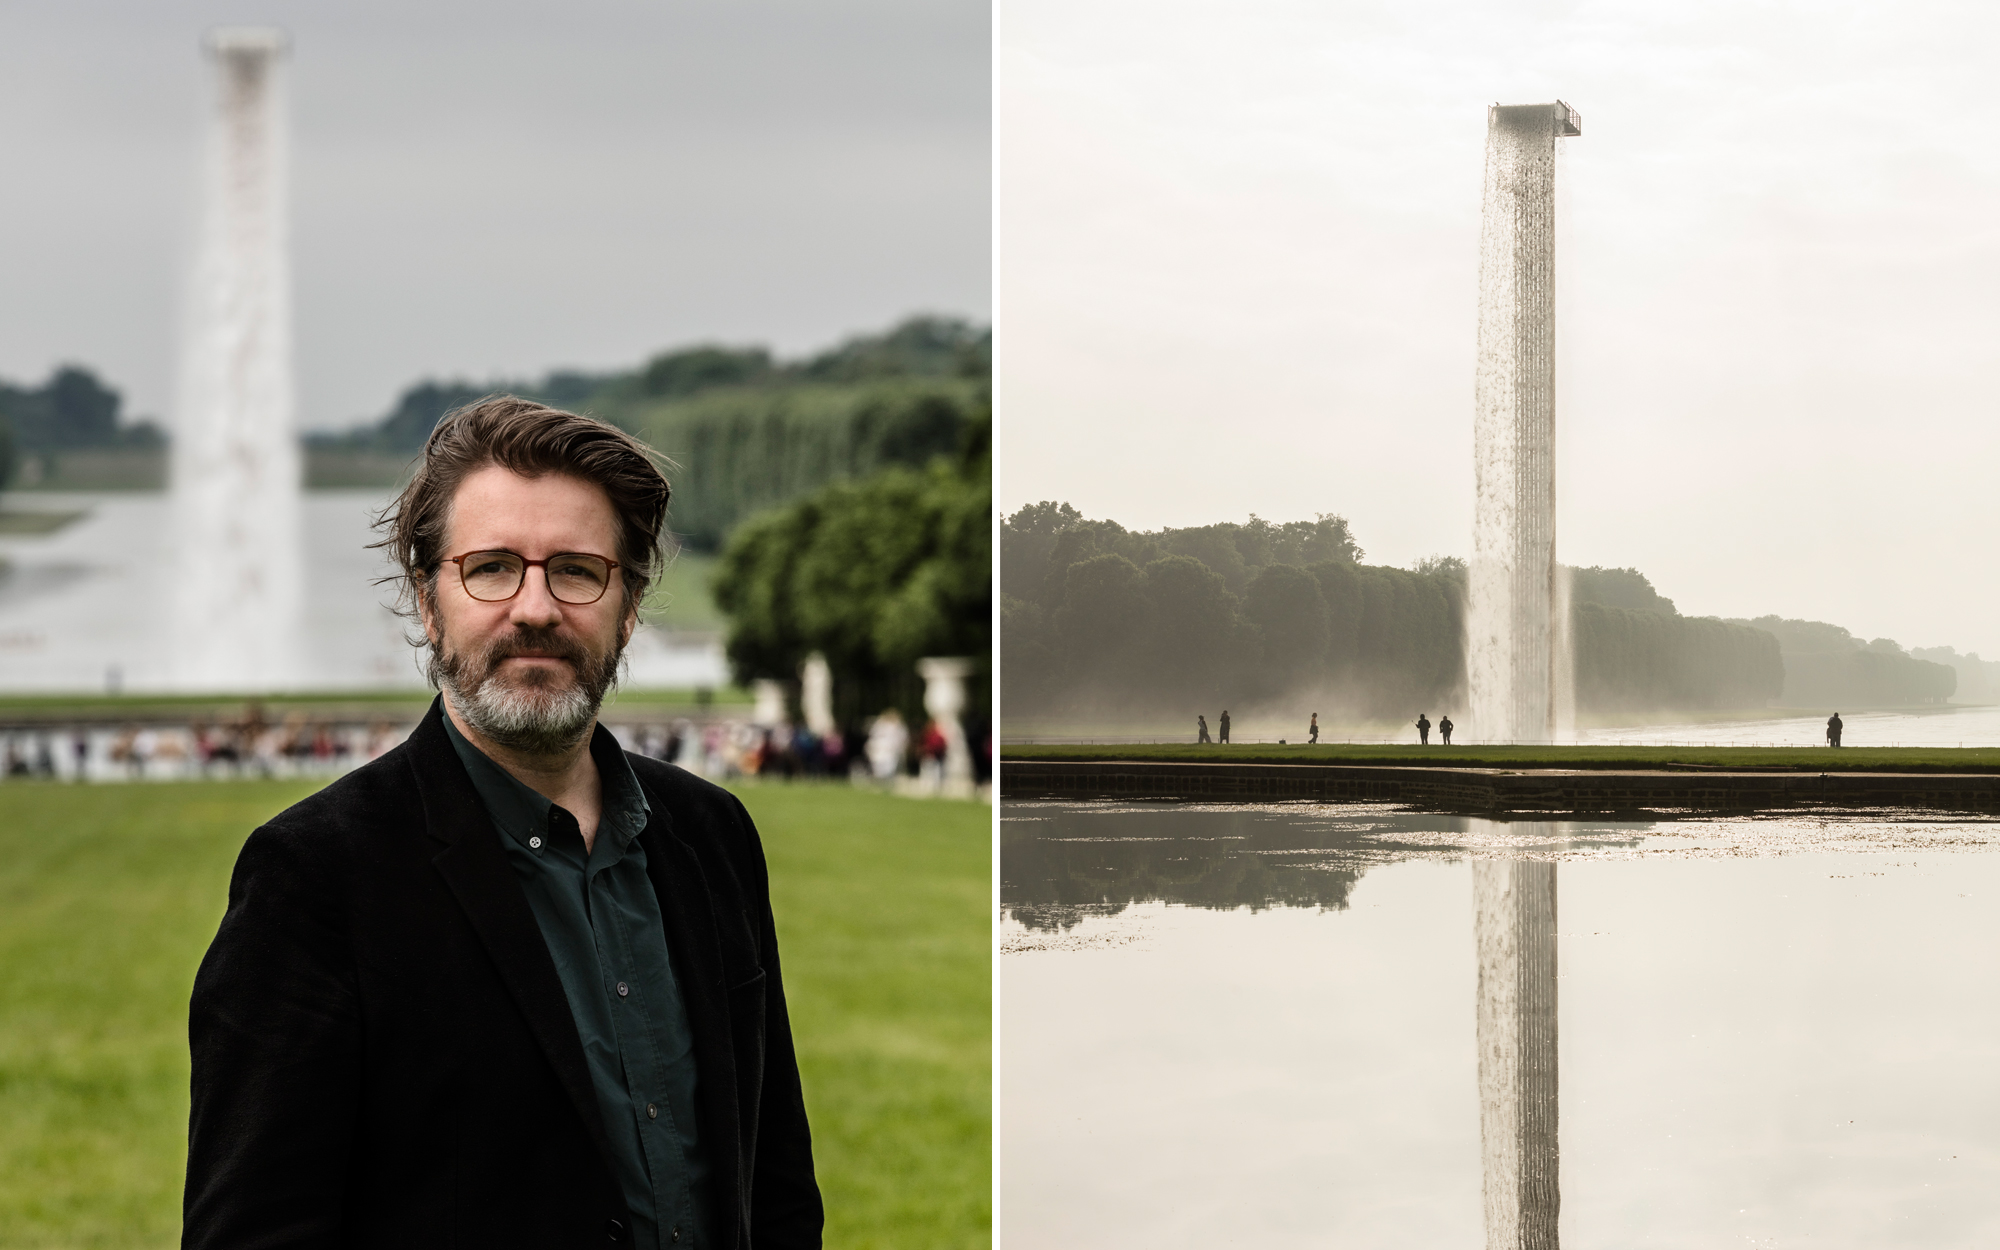 Floating Waterfall by Olafur Eliasson